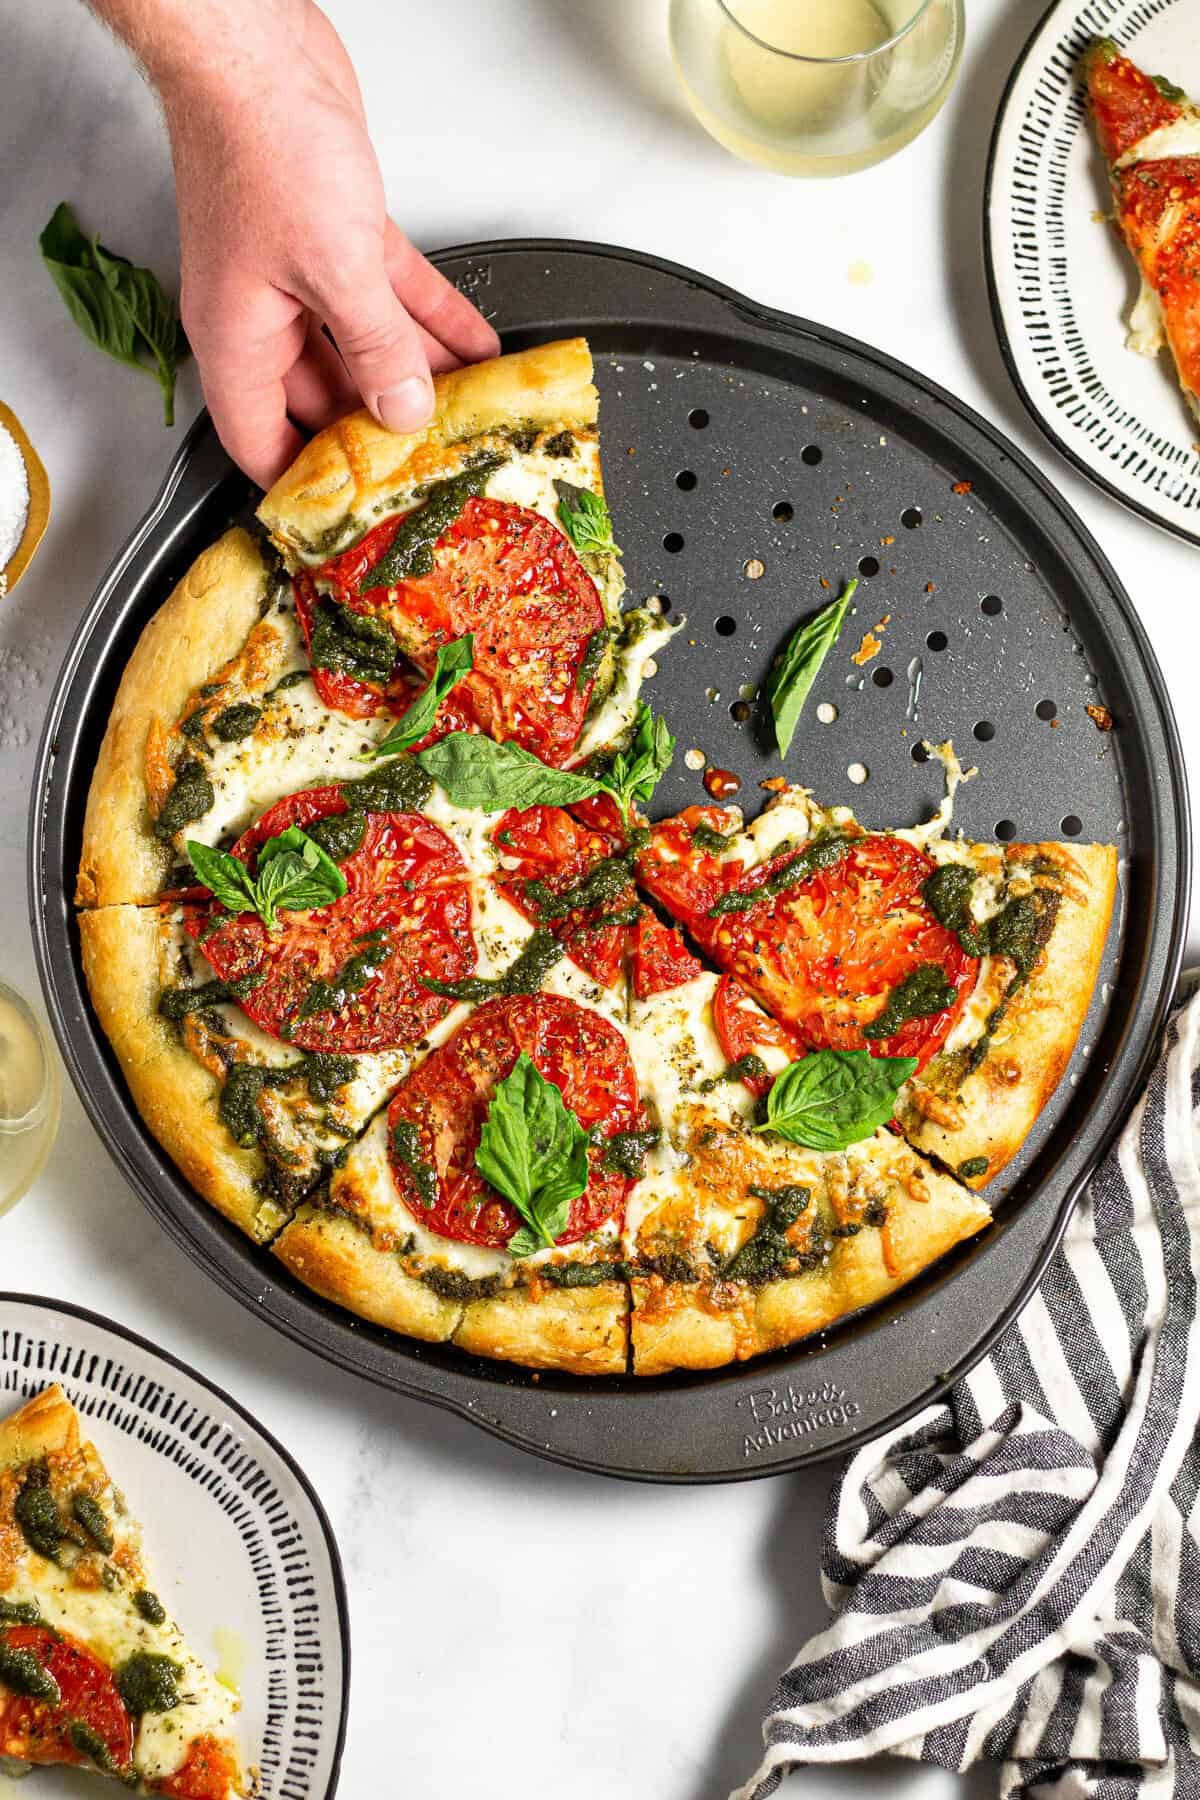 A hand reaching for a slice of pesto pizza on a pizza pan